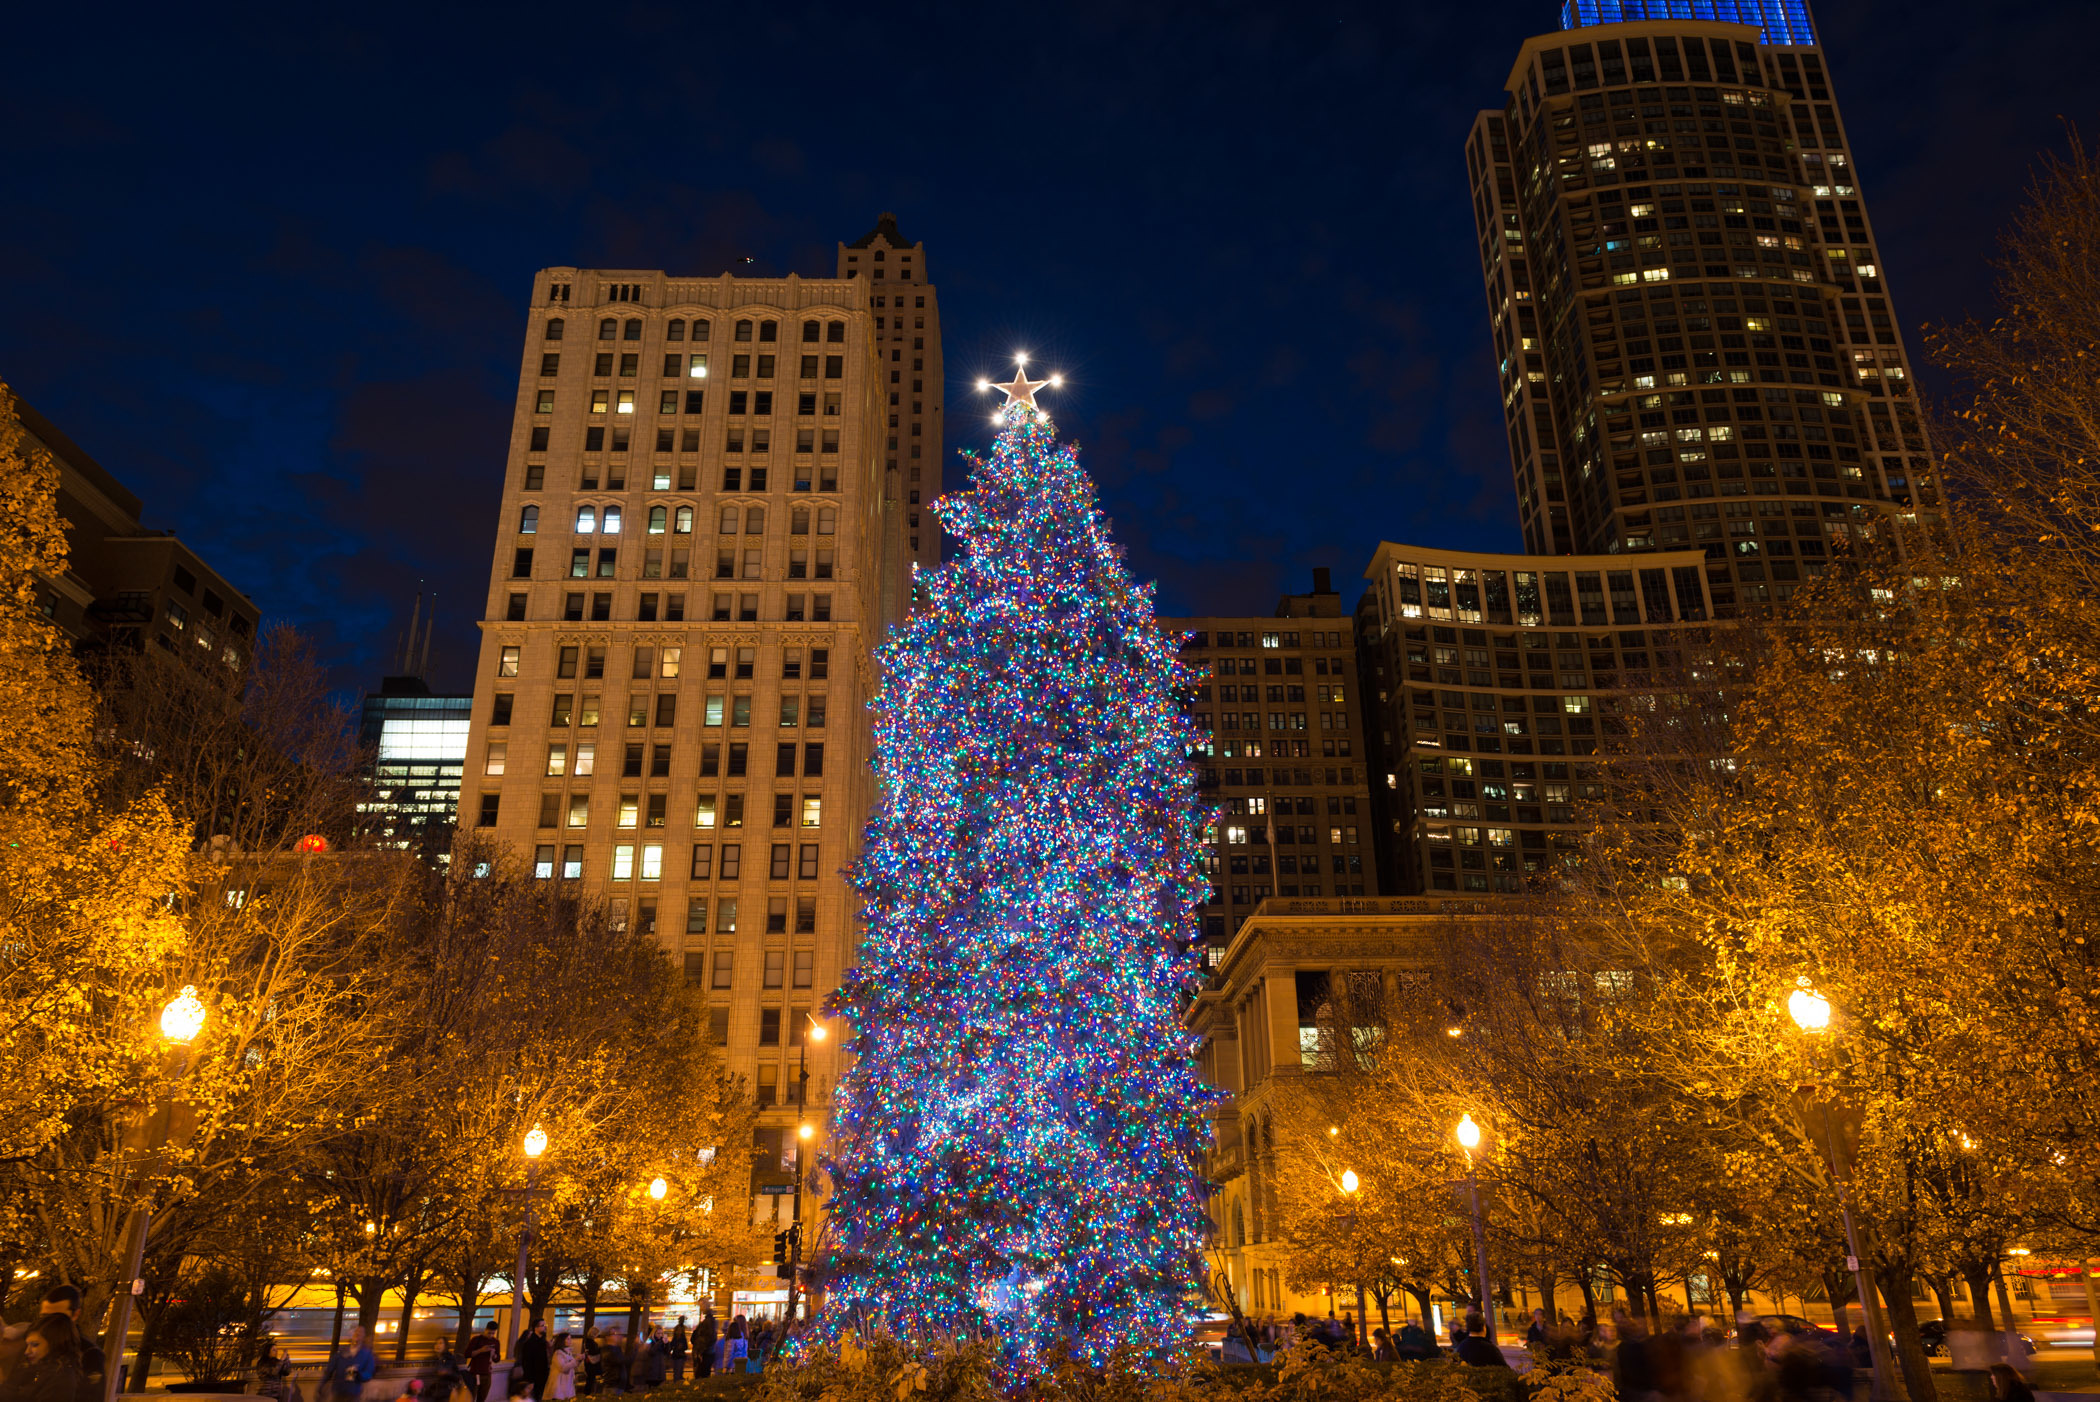 Christmas Programs In The Chicago Suburbs For 2020 December 2020 Events Calendar for Things To Do in Chicago